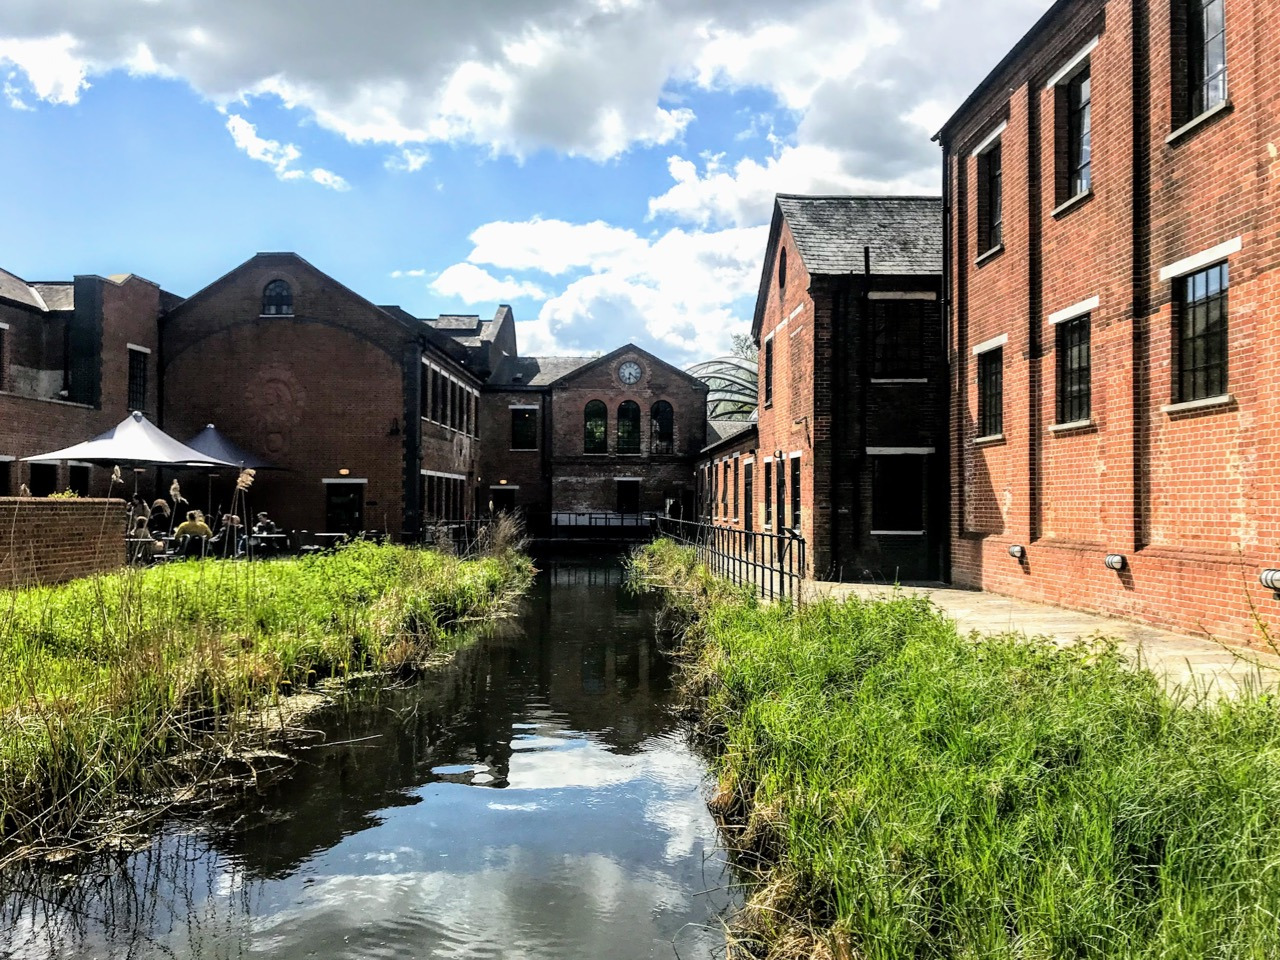 Planning a Bombay Sapphire Distillery Tour at Laverstoke Mill - Mill